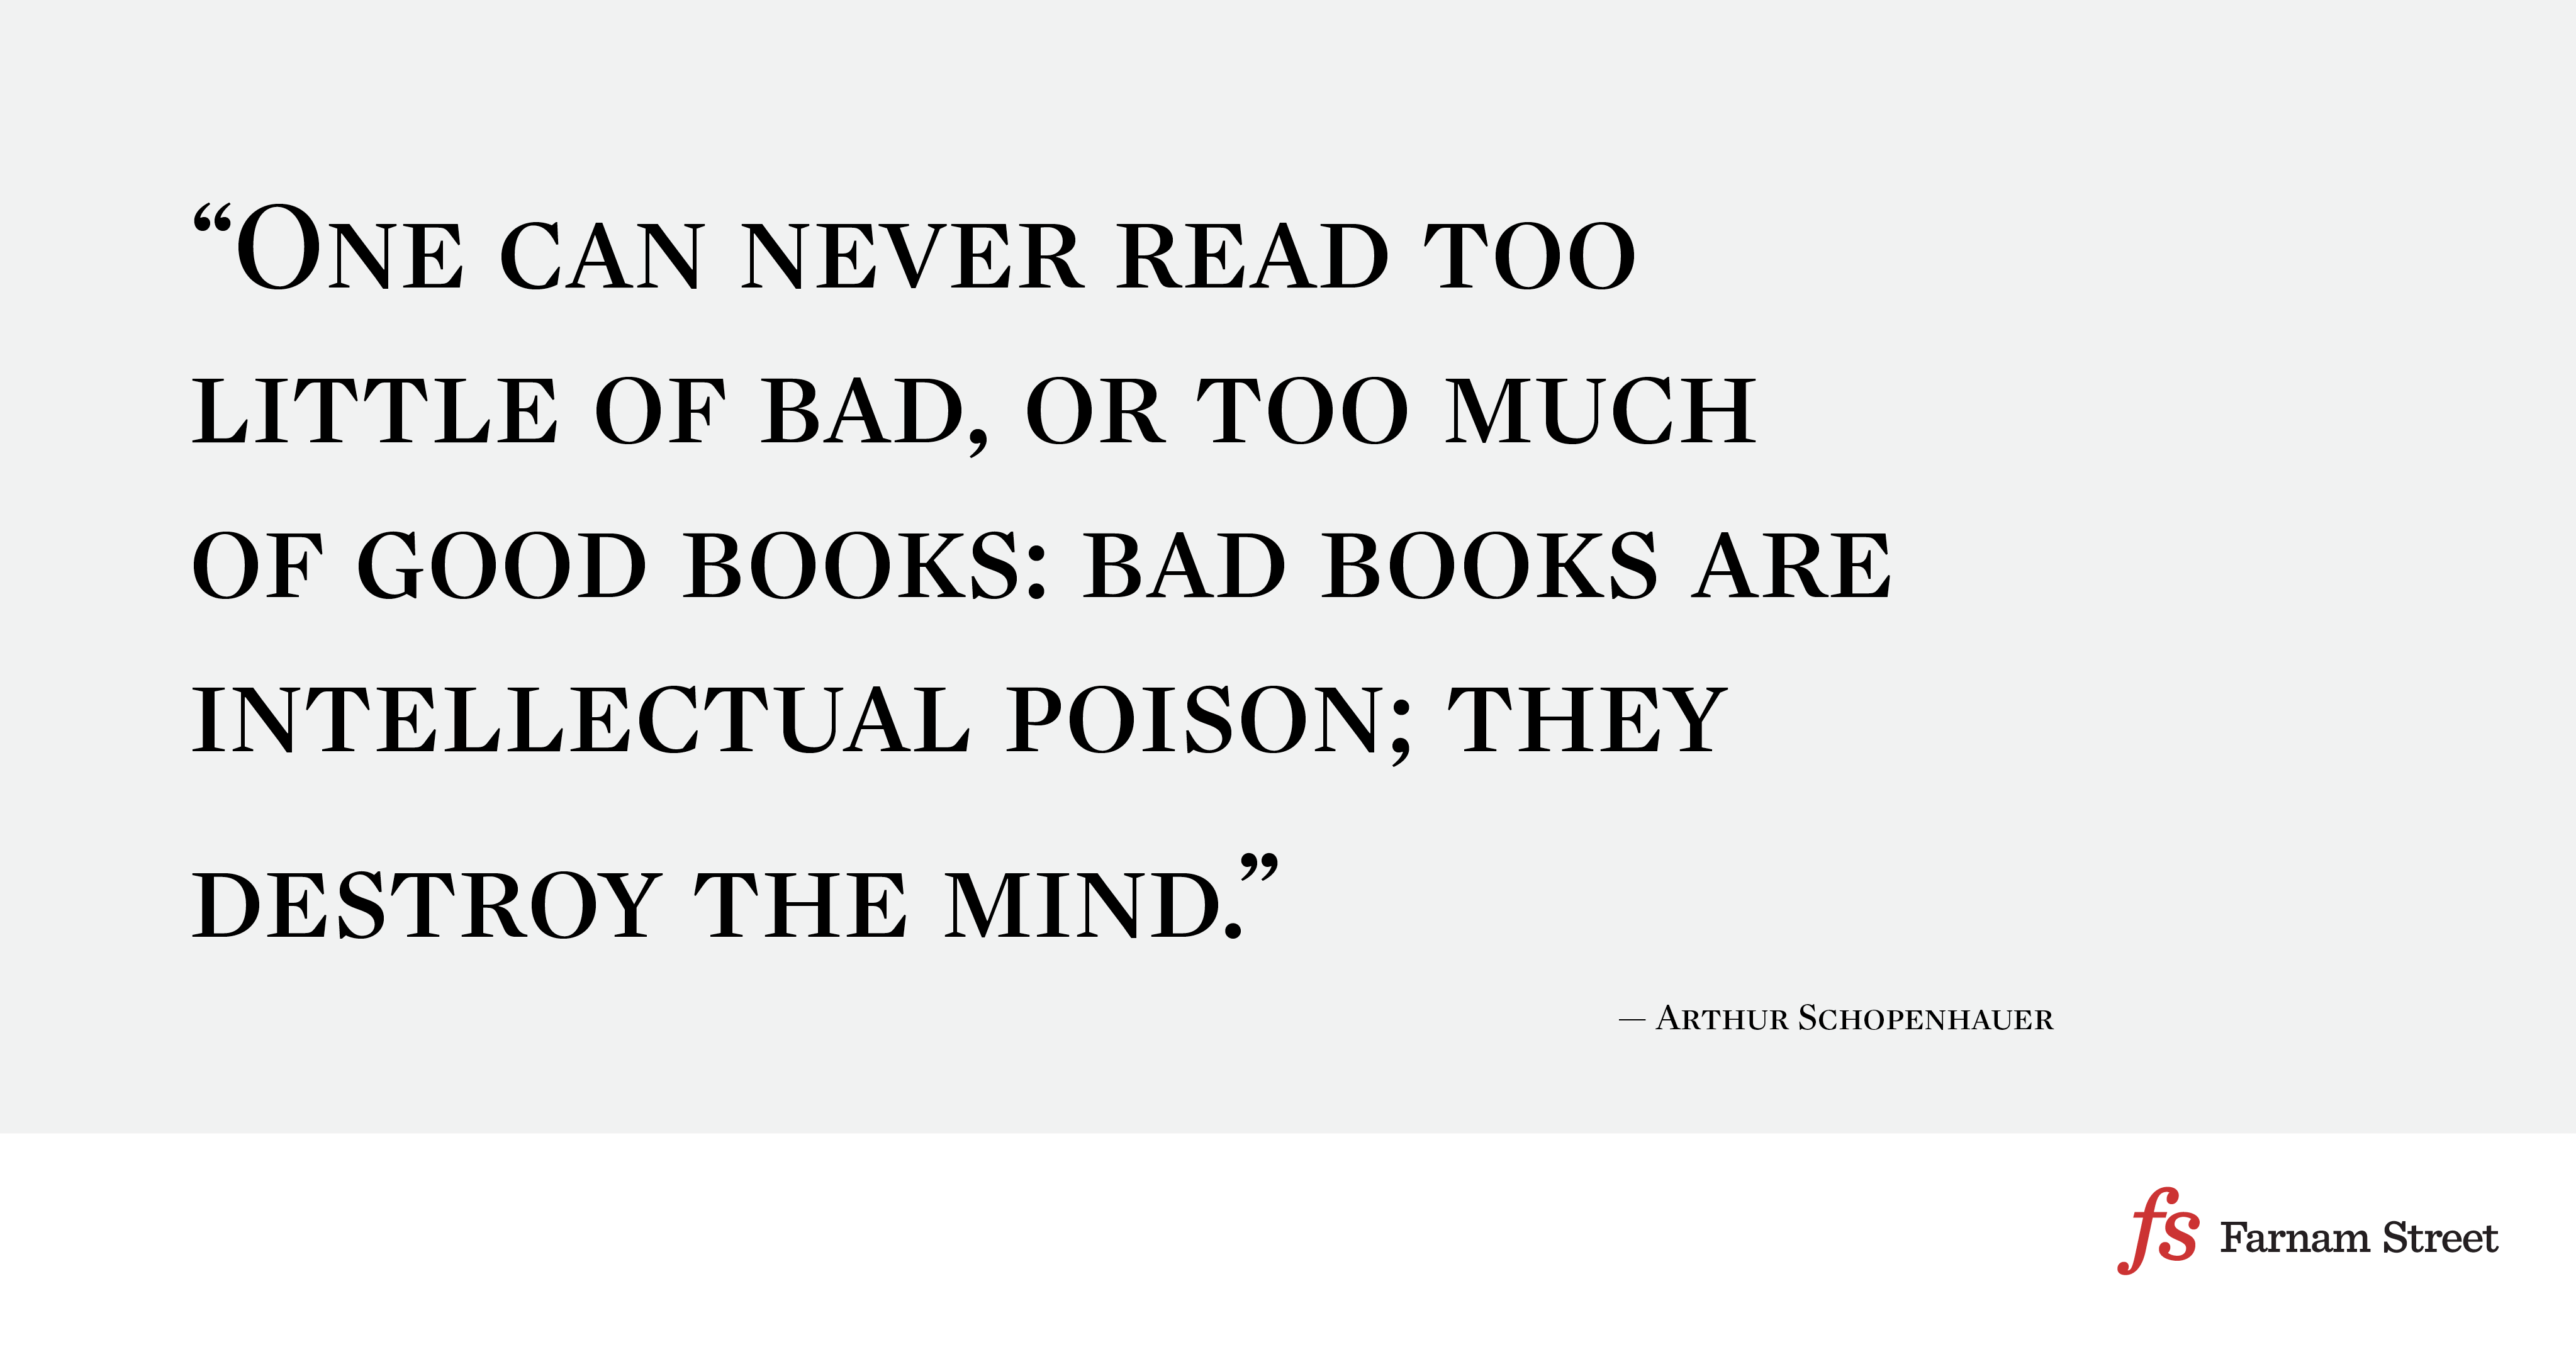 One can never read too little of bad, or too much of good books: bad books are intellectual poison; they destroy the mind.